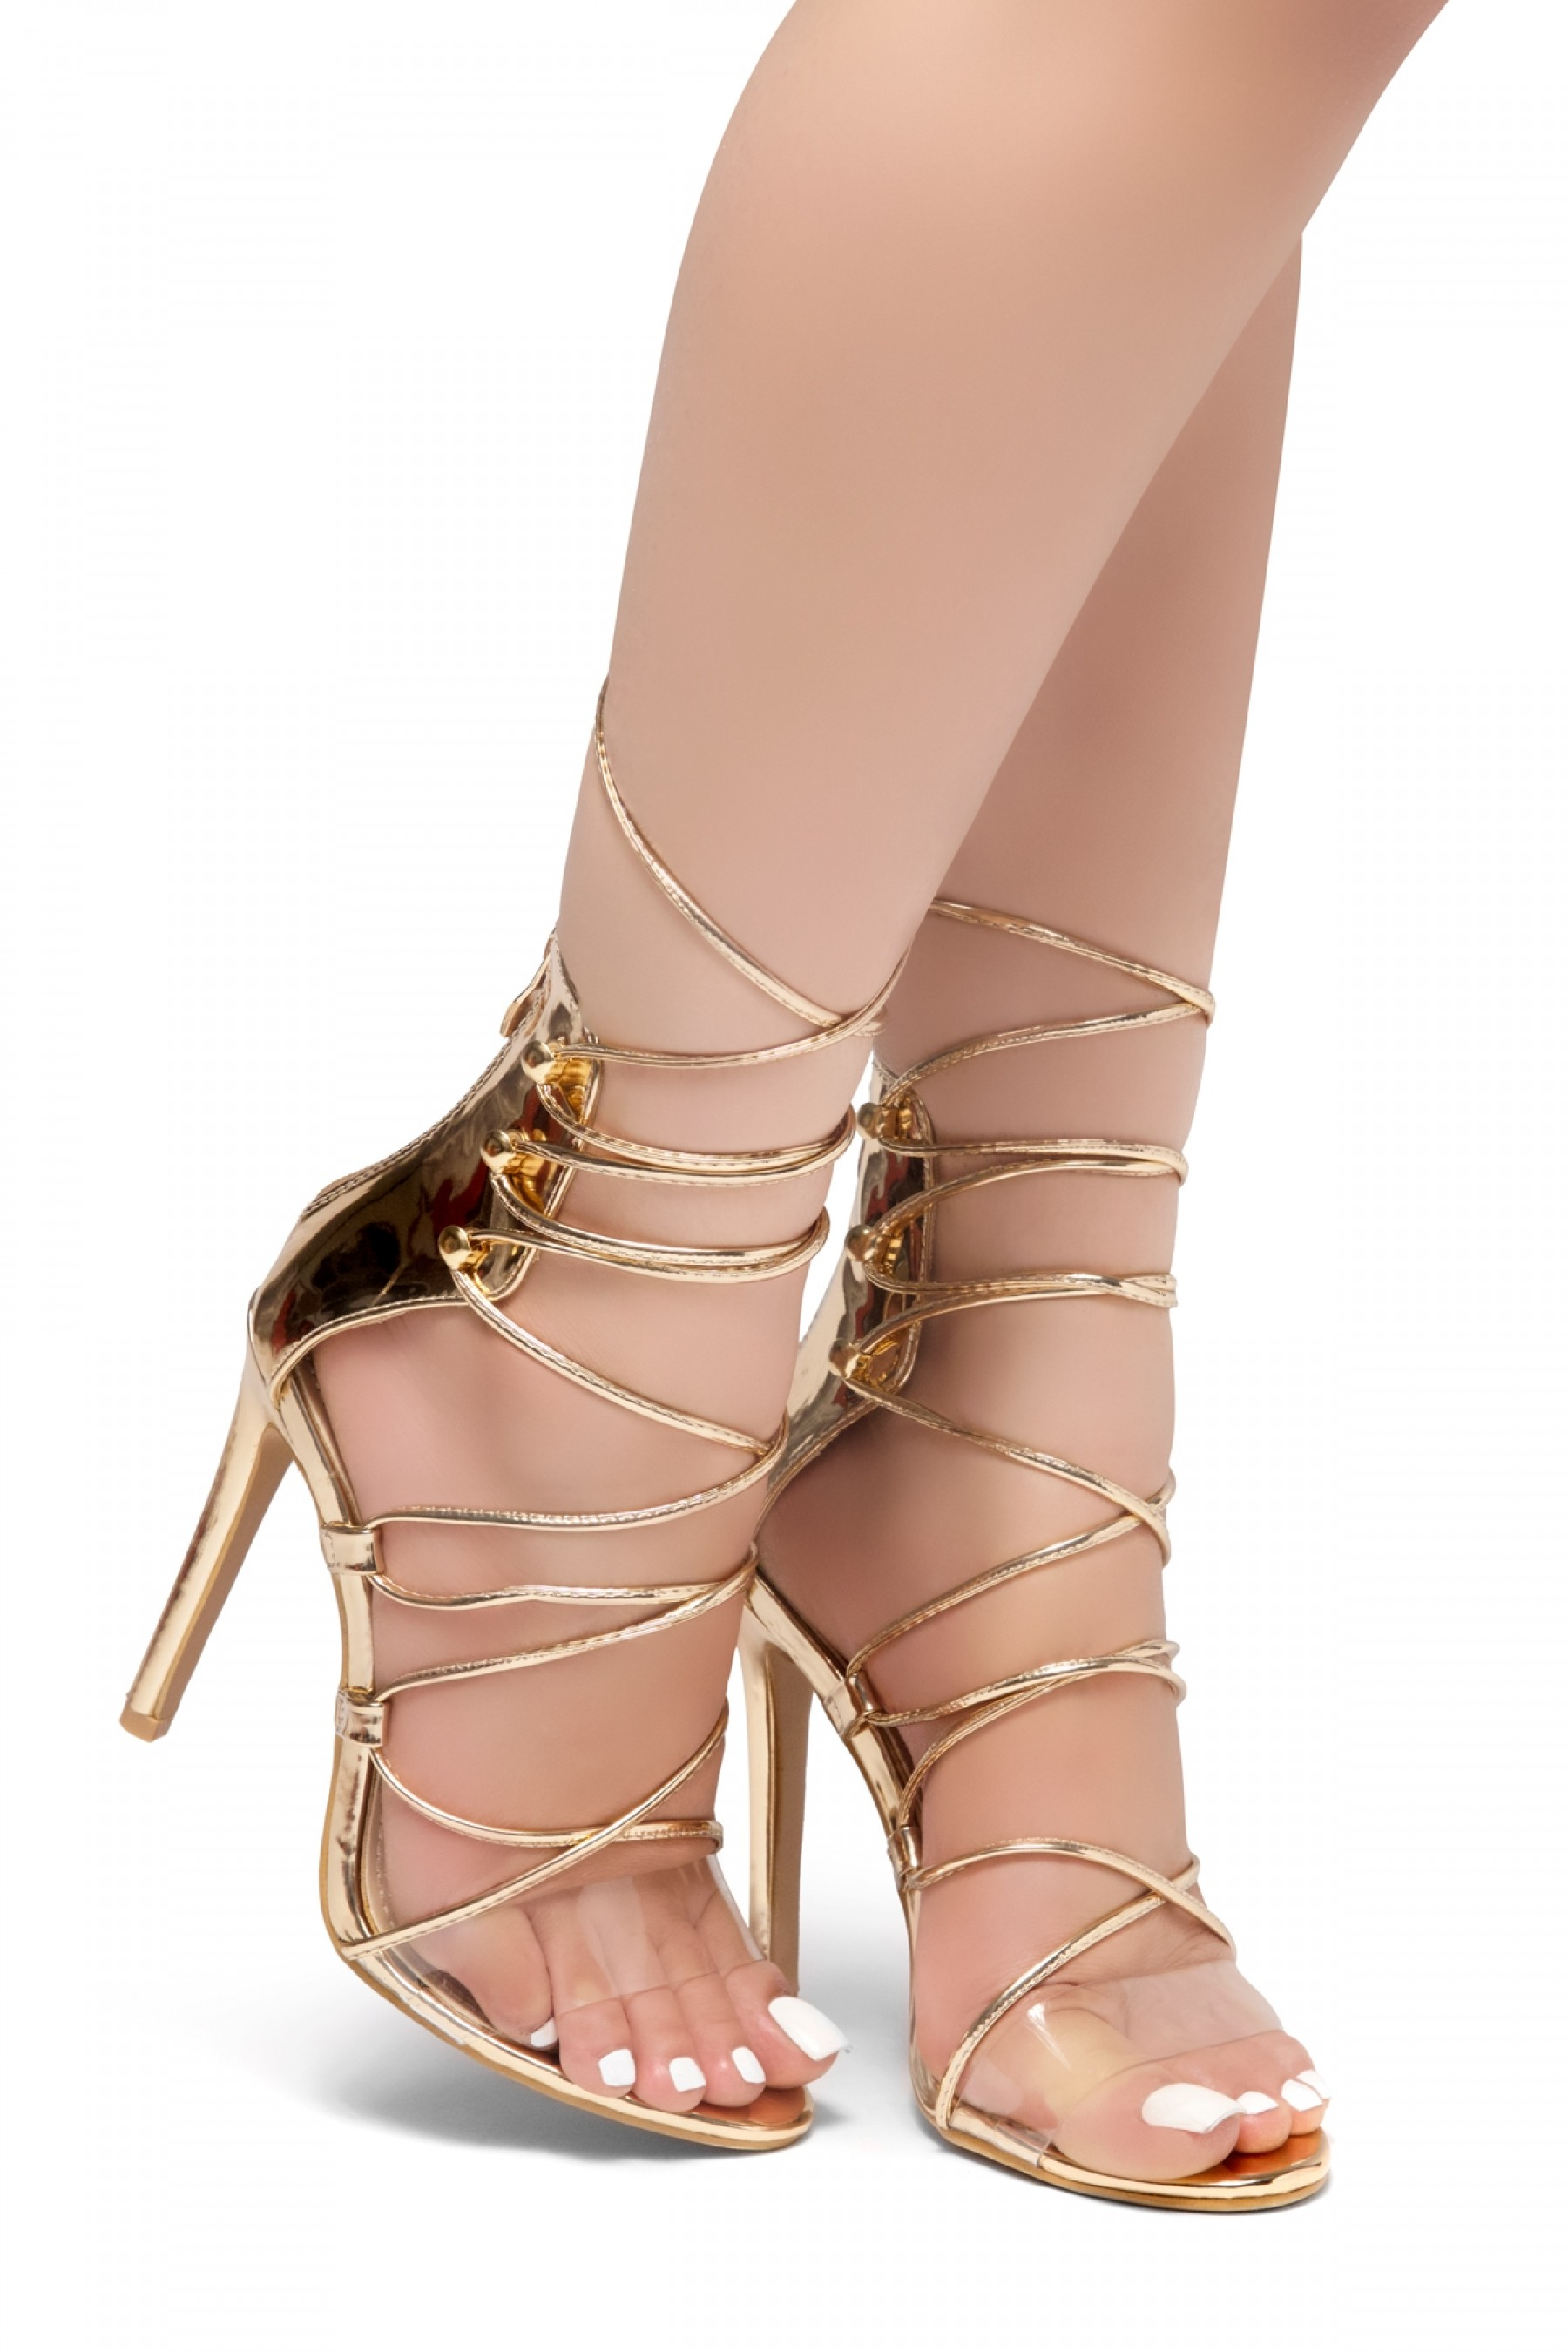 HerStyle LOVELY LADY-Stiletto heel, front lace-up, back zipper sandals (RoseGold)